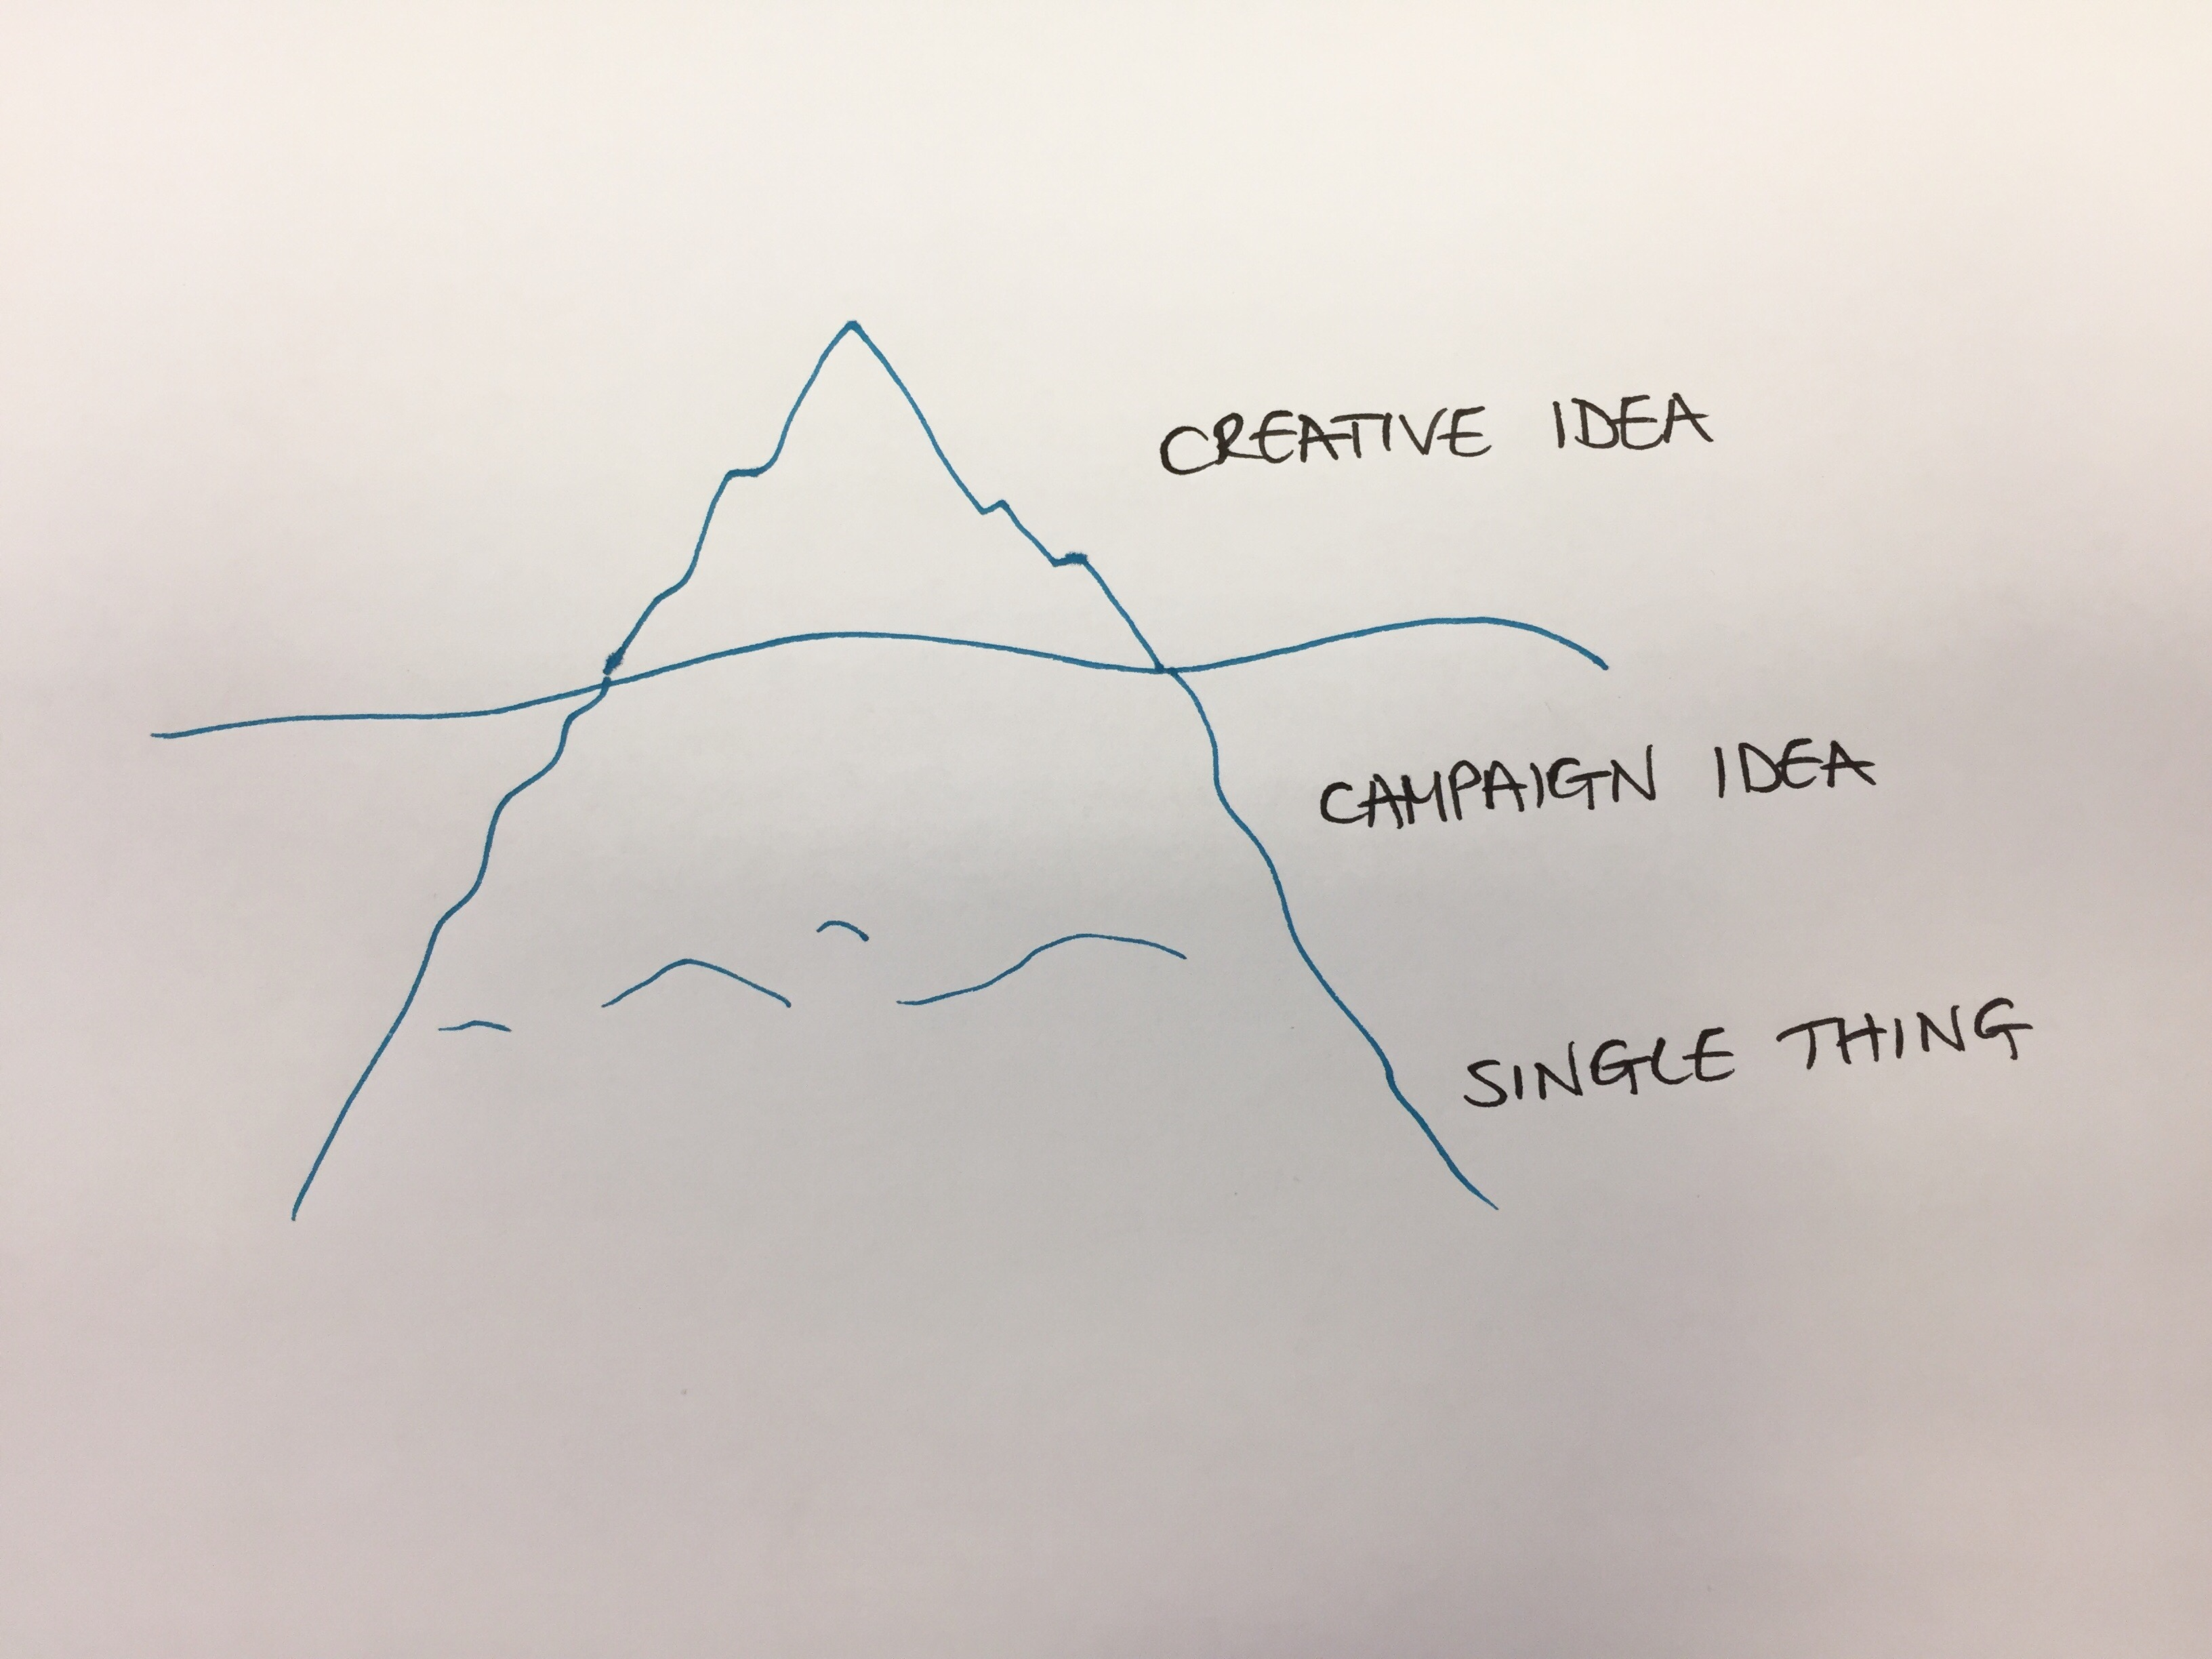 The Heirarchy of Ideas